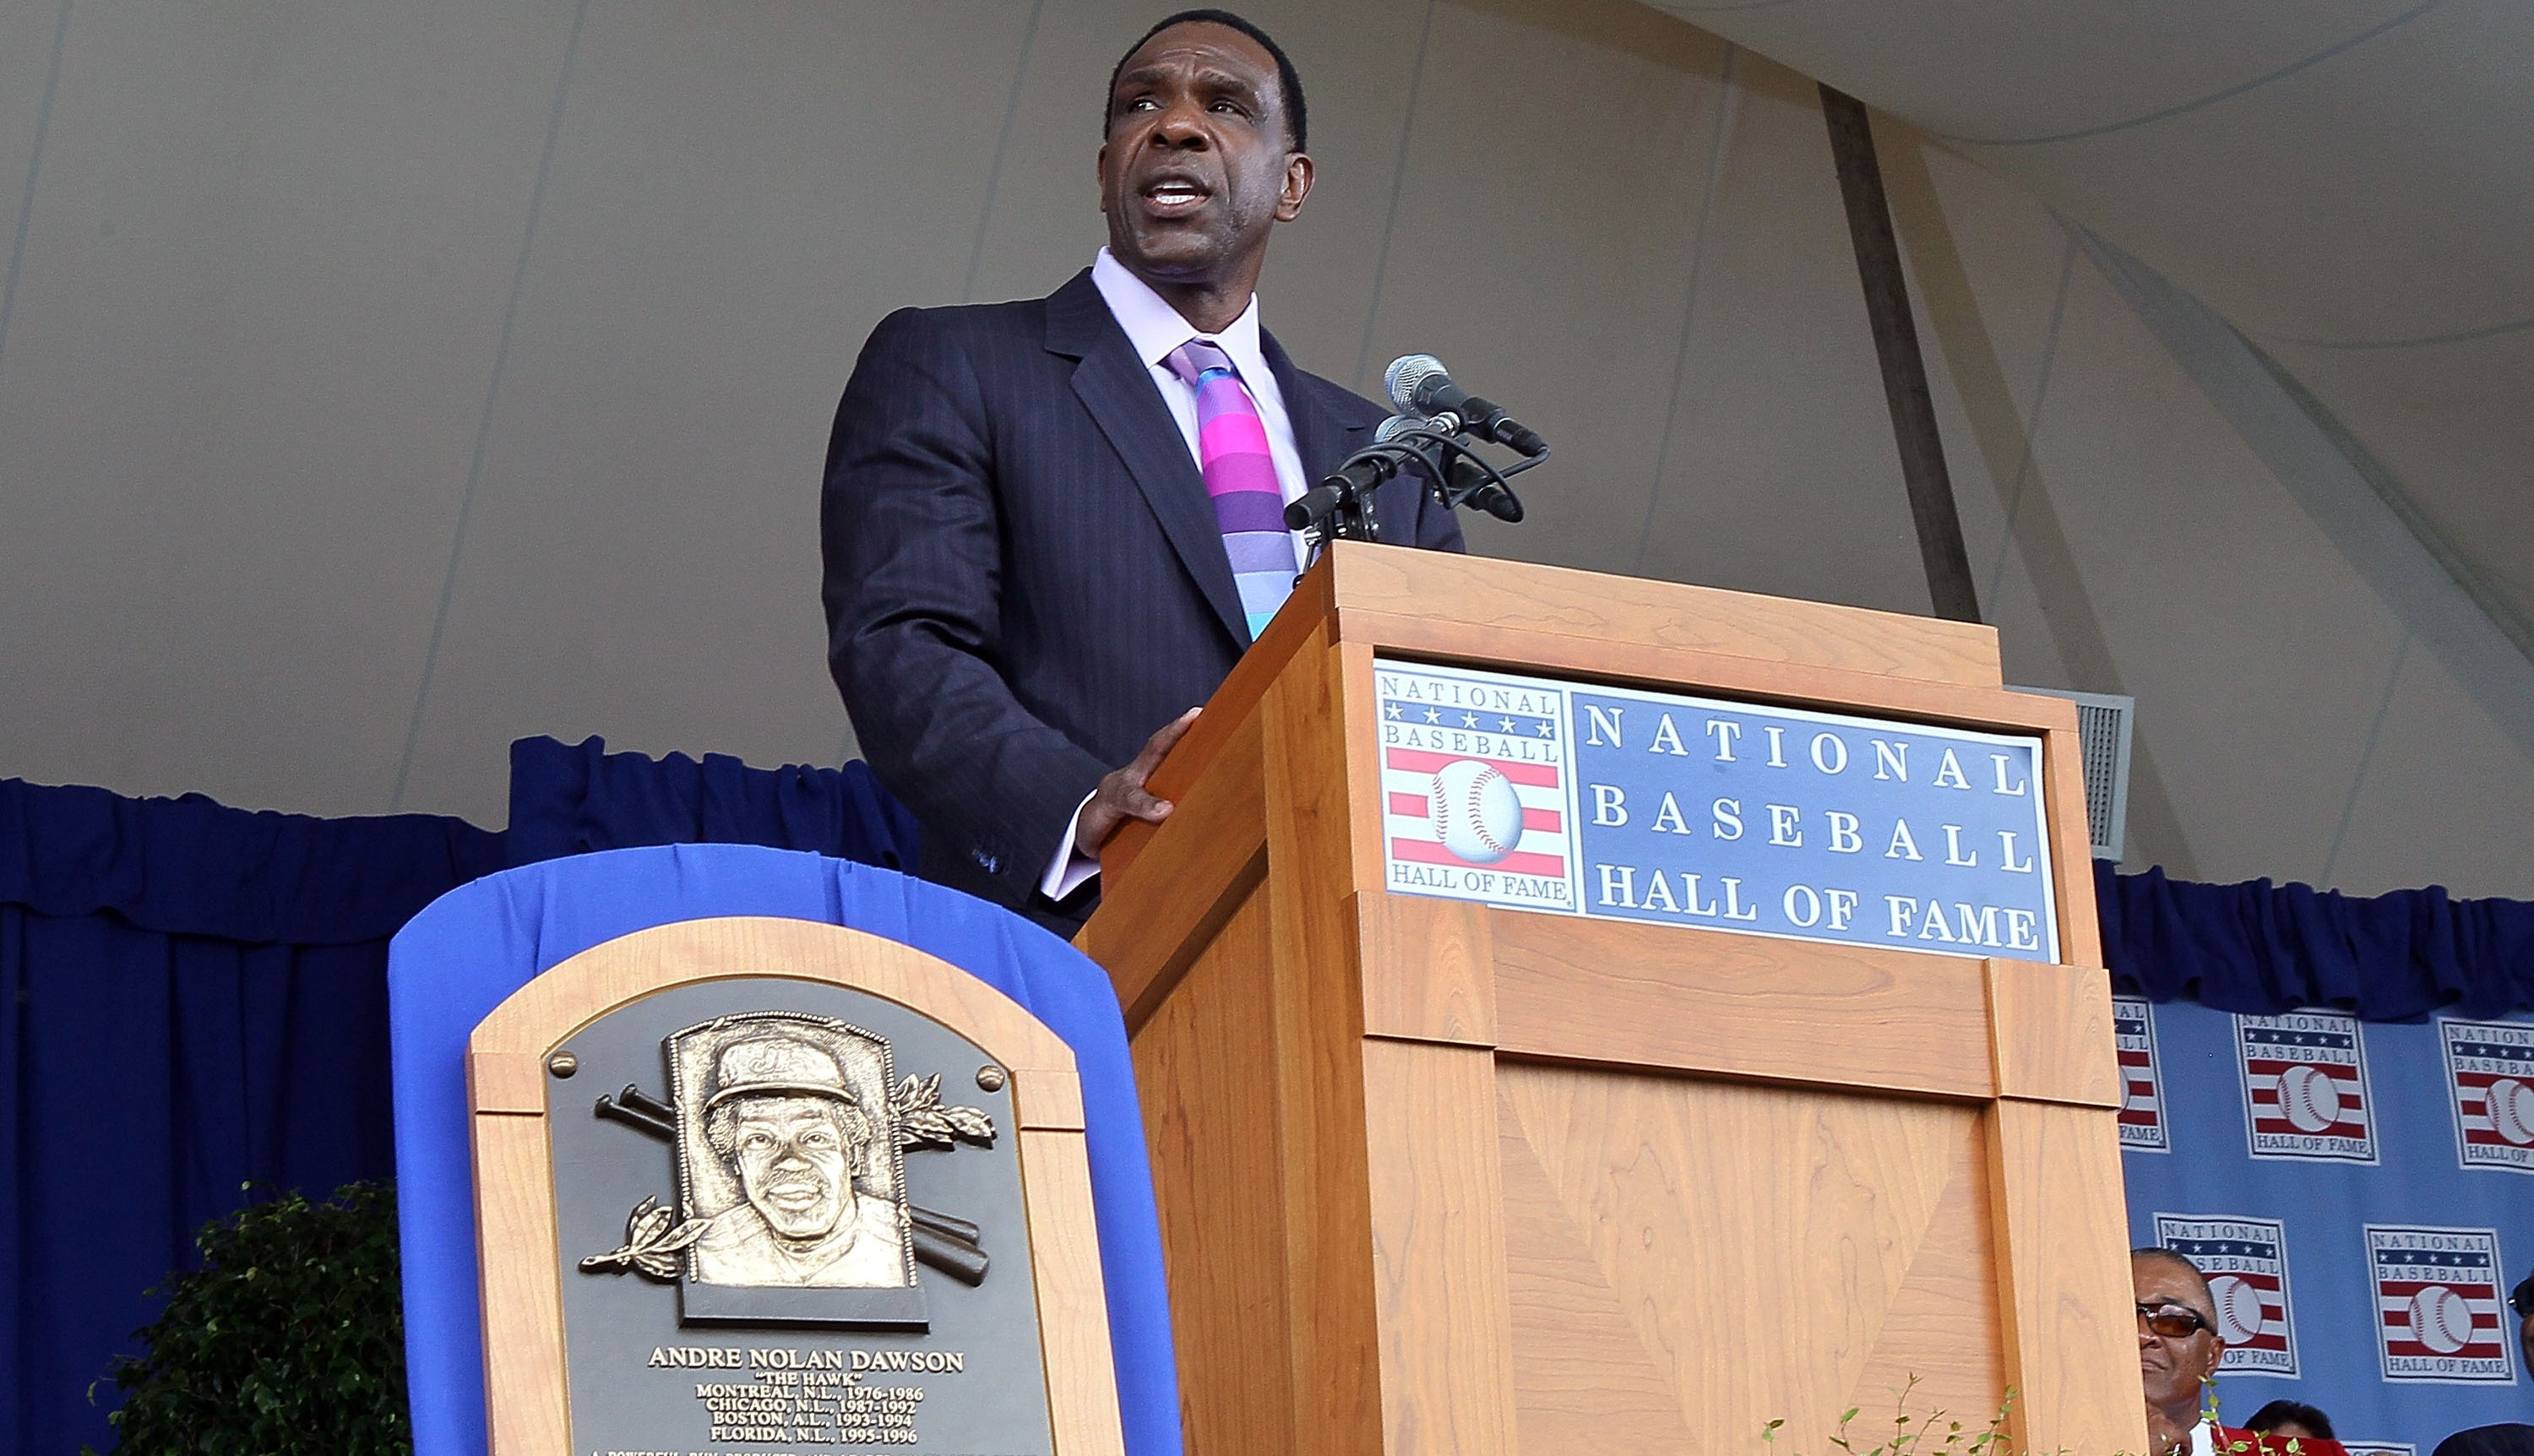 Andre Dawson is inducted into the hall of fame